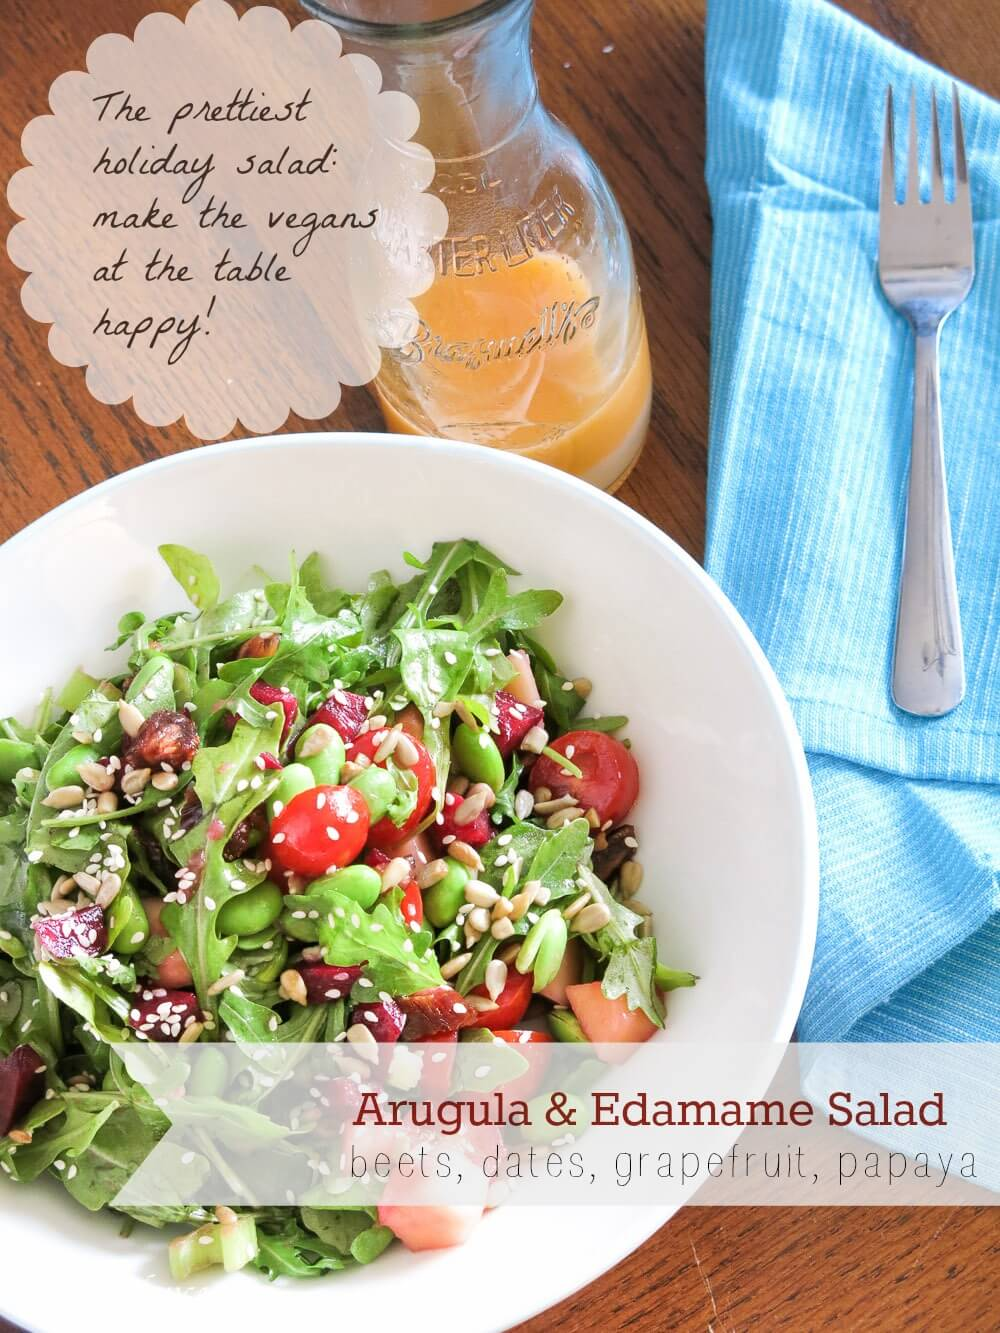 Arugula and Edamame Salad with Beets and Dates | The infinebalance Food blog #recipe #salad